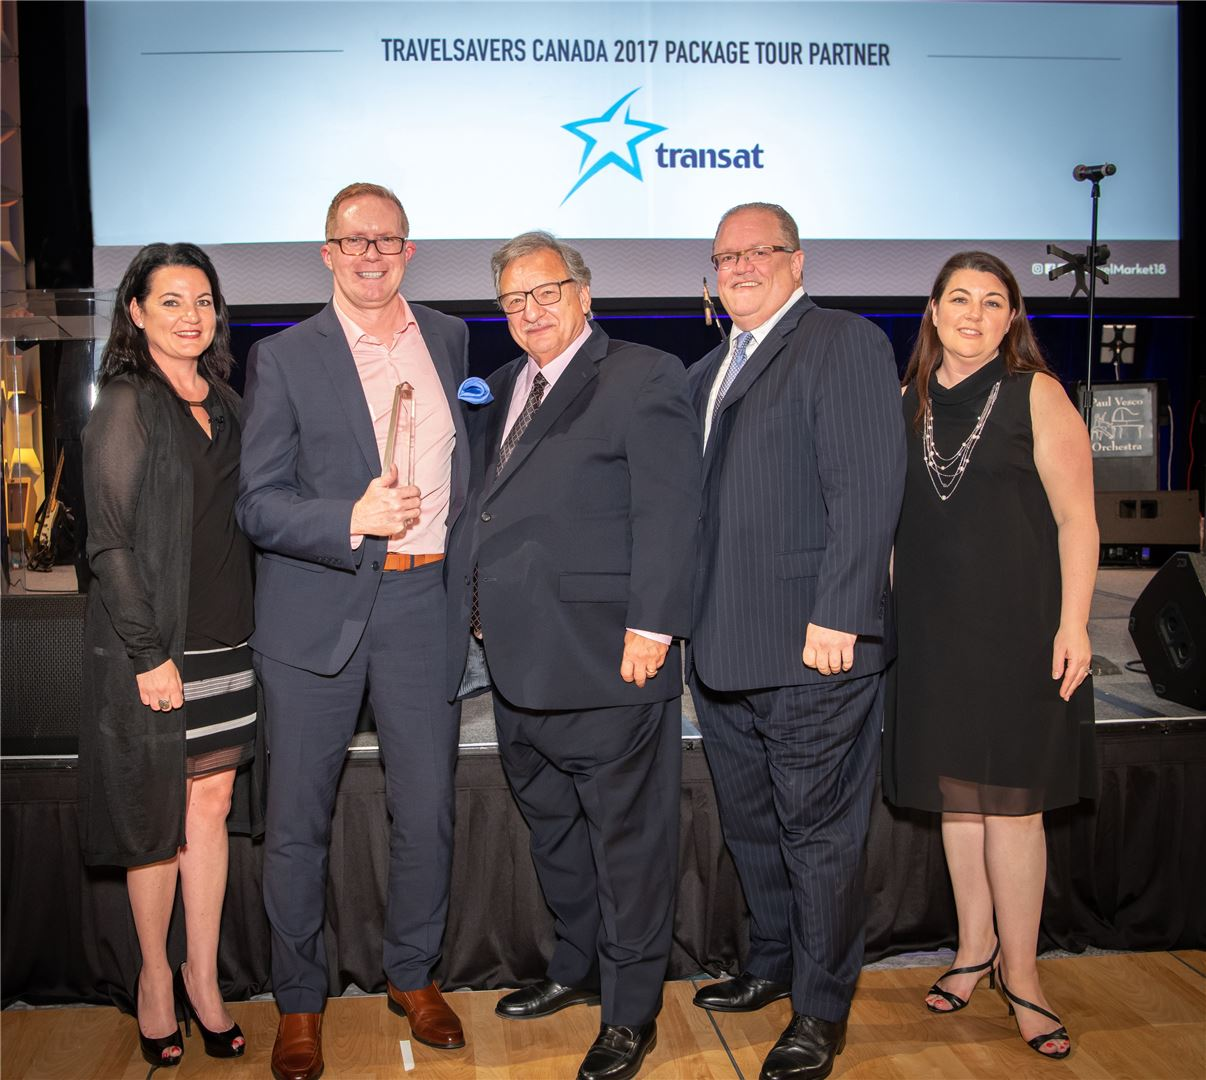 TRAVELSAVERS and NEST leadership presented awards to top agents at this year's annual conference.